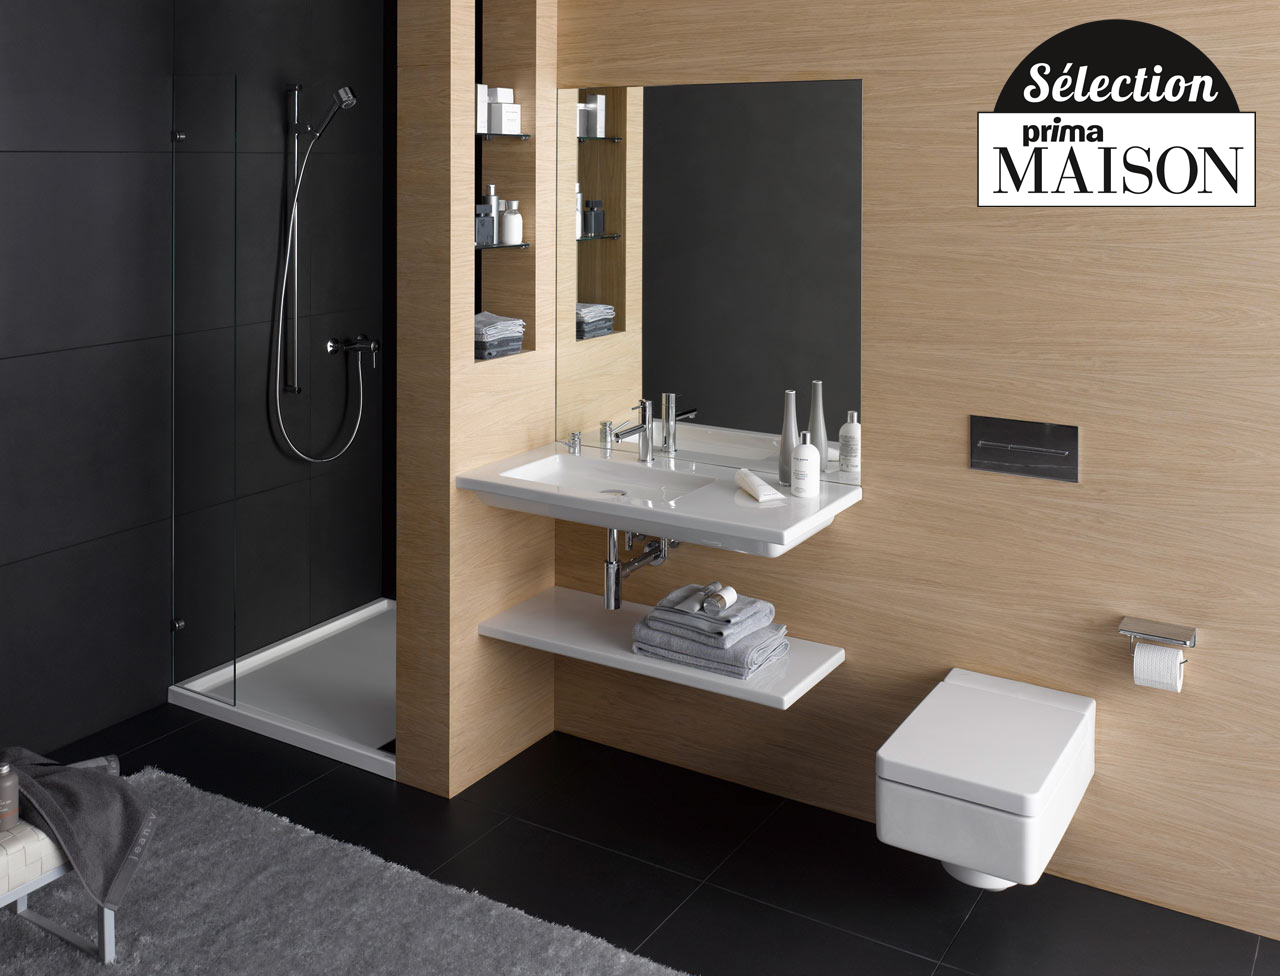 D coration salle de bain 2016 exemples d 39 am nagements for Decoration maison salle de bain